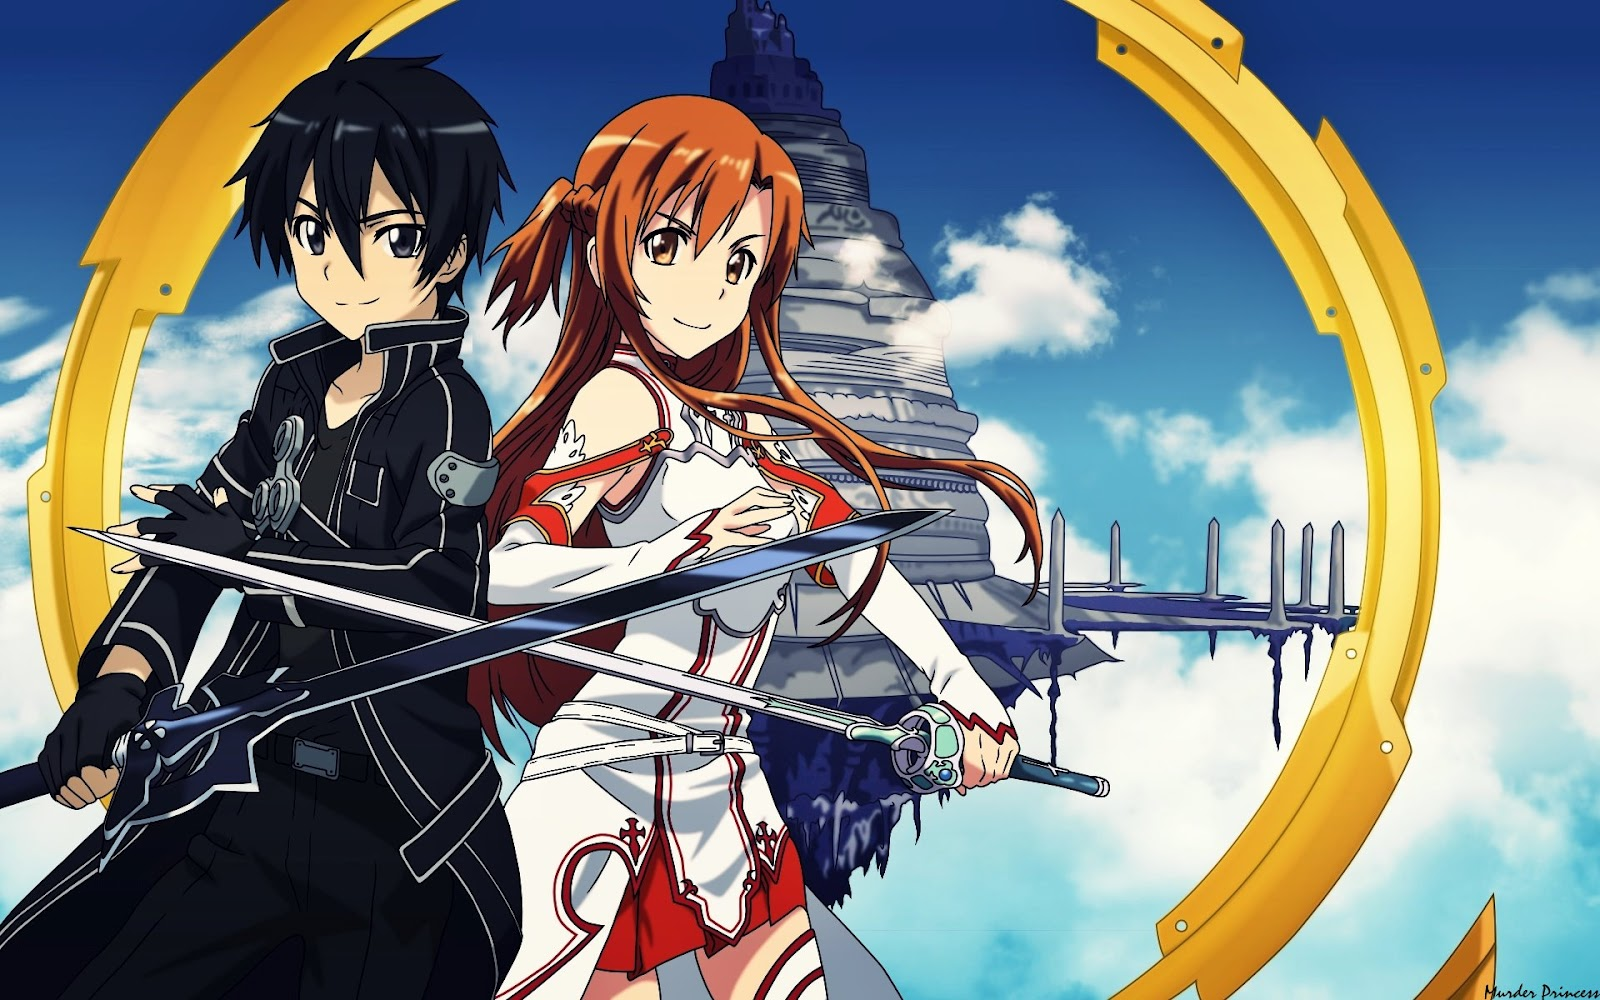 Skydance Media Acquires Live-Action Rights to 'Sword Art Online'